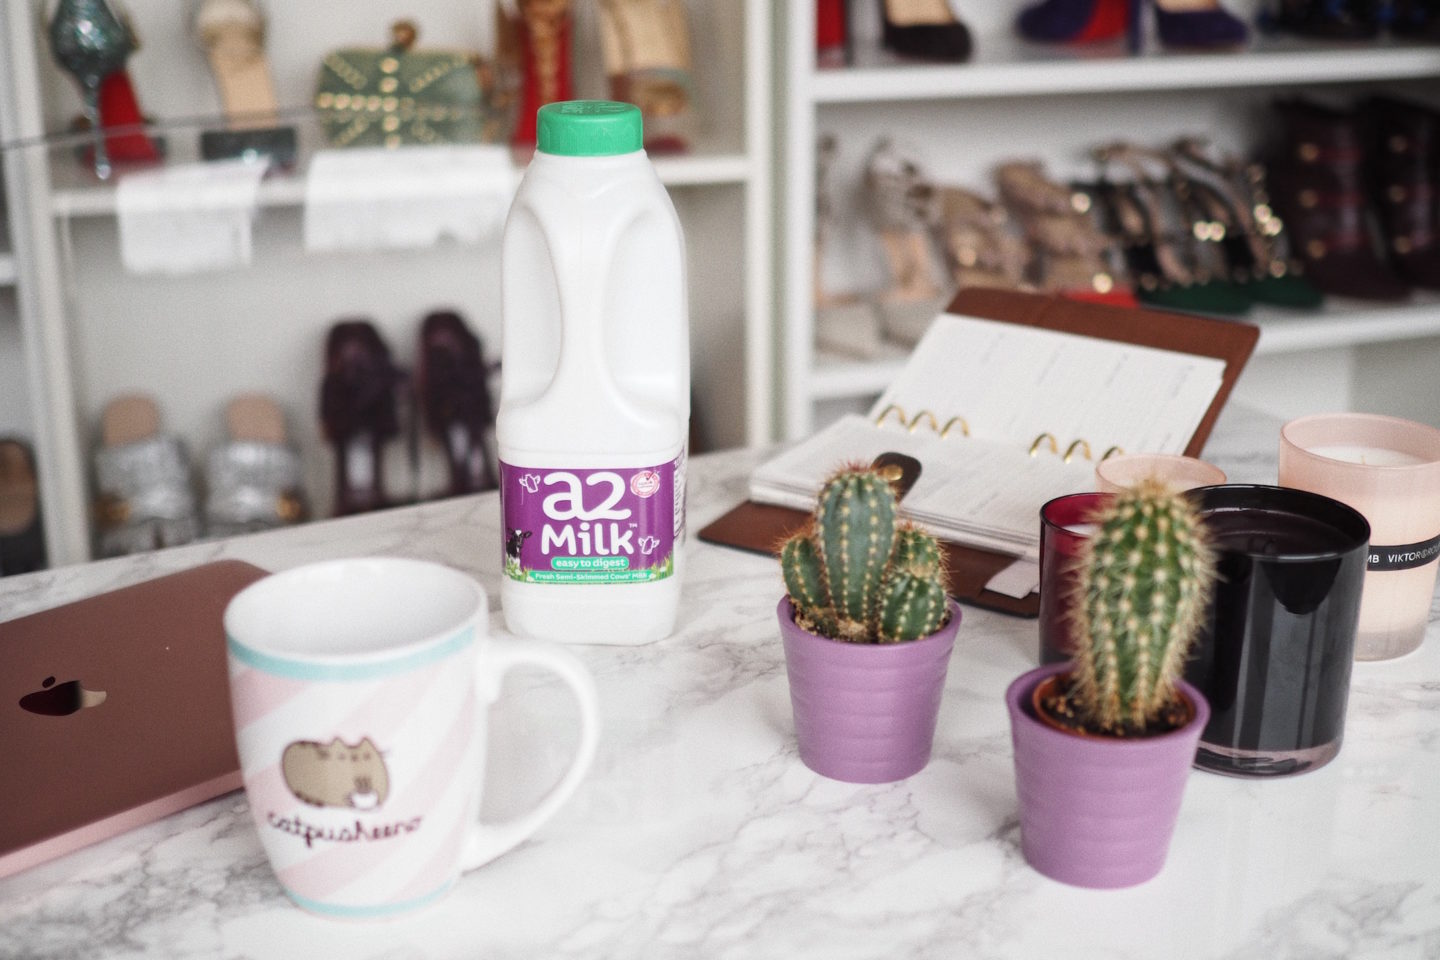 My experience trying a2 Milk lifestyle uk